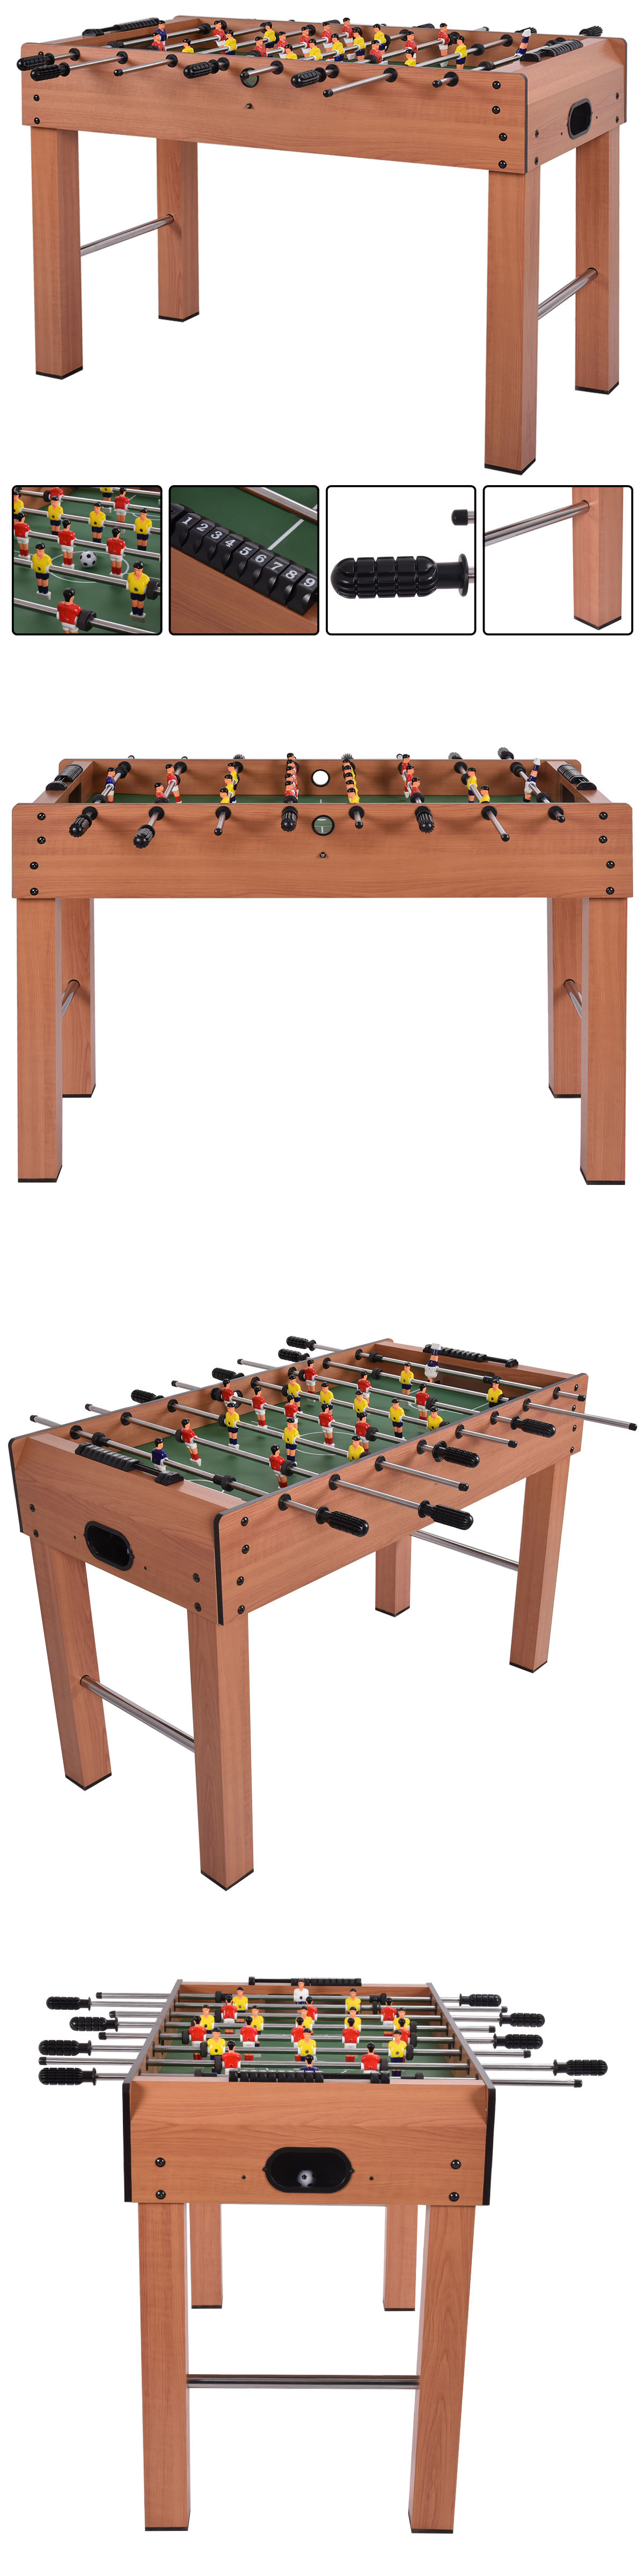 Foosball 36276: 48 Foosball Table Competition Game Soccer Arcade Sized  Football Sports Indoor BUY IT